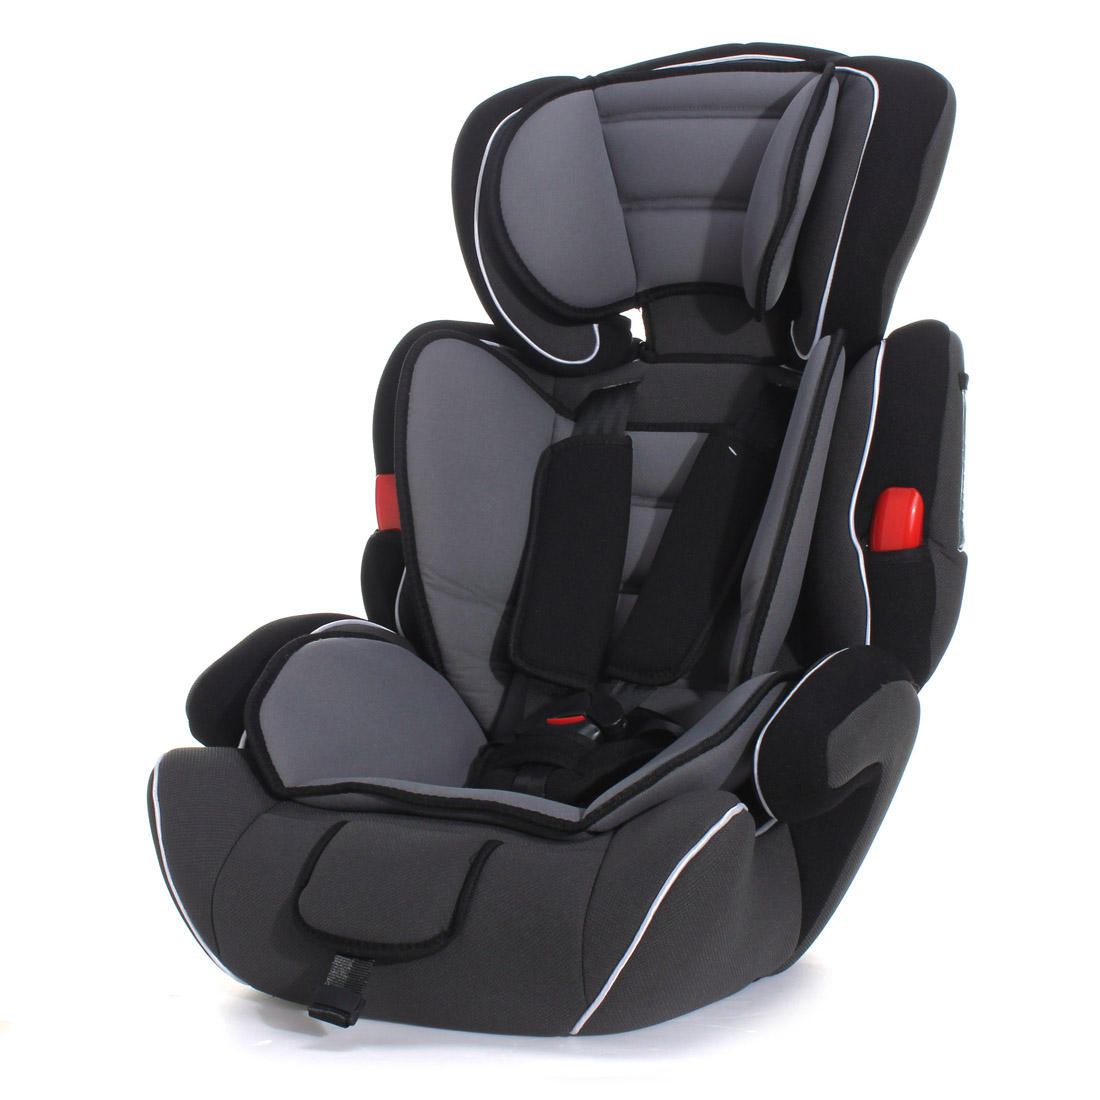 Baby Car Seat For Sale Philippines Black Convertible Baby Kid Children Car Safety Seat Booster Seat Group 1 2 3 9 36 Kg Series A